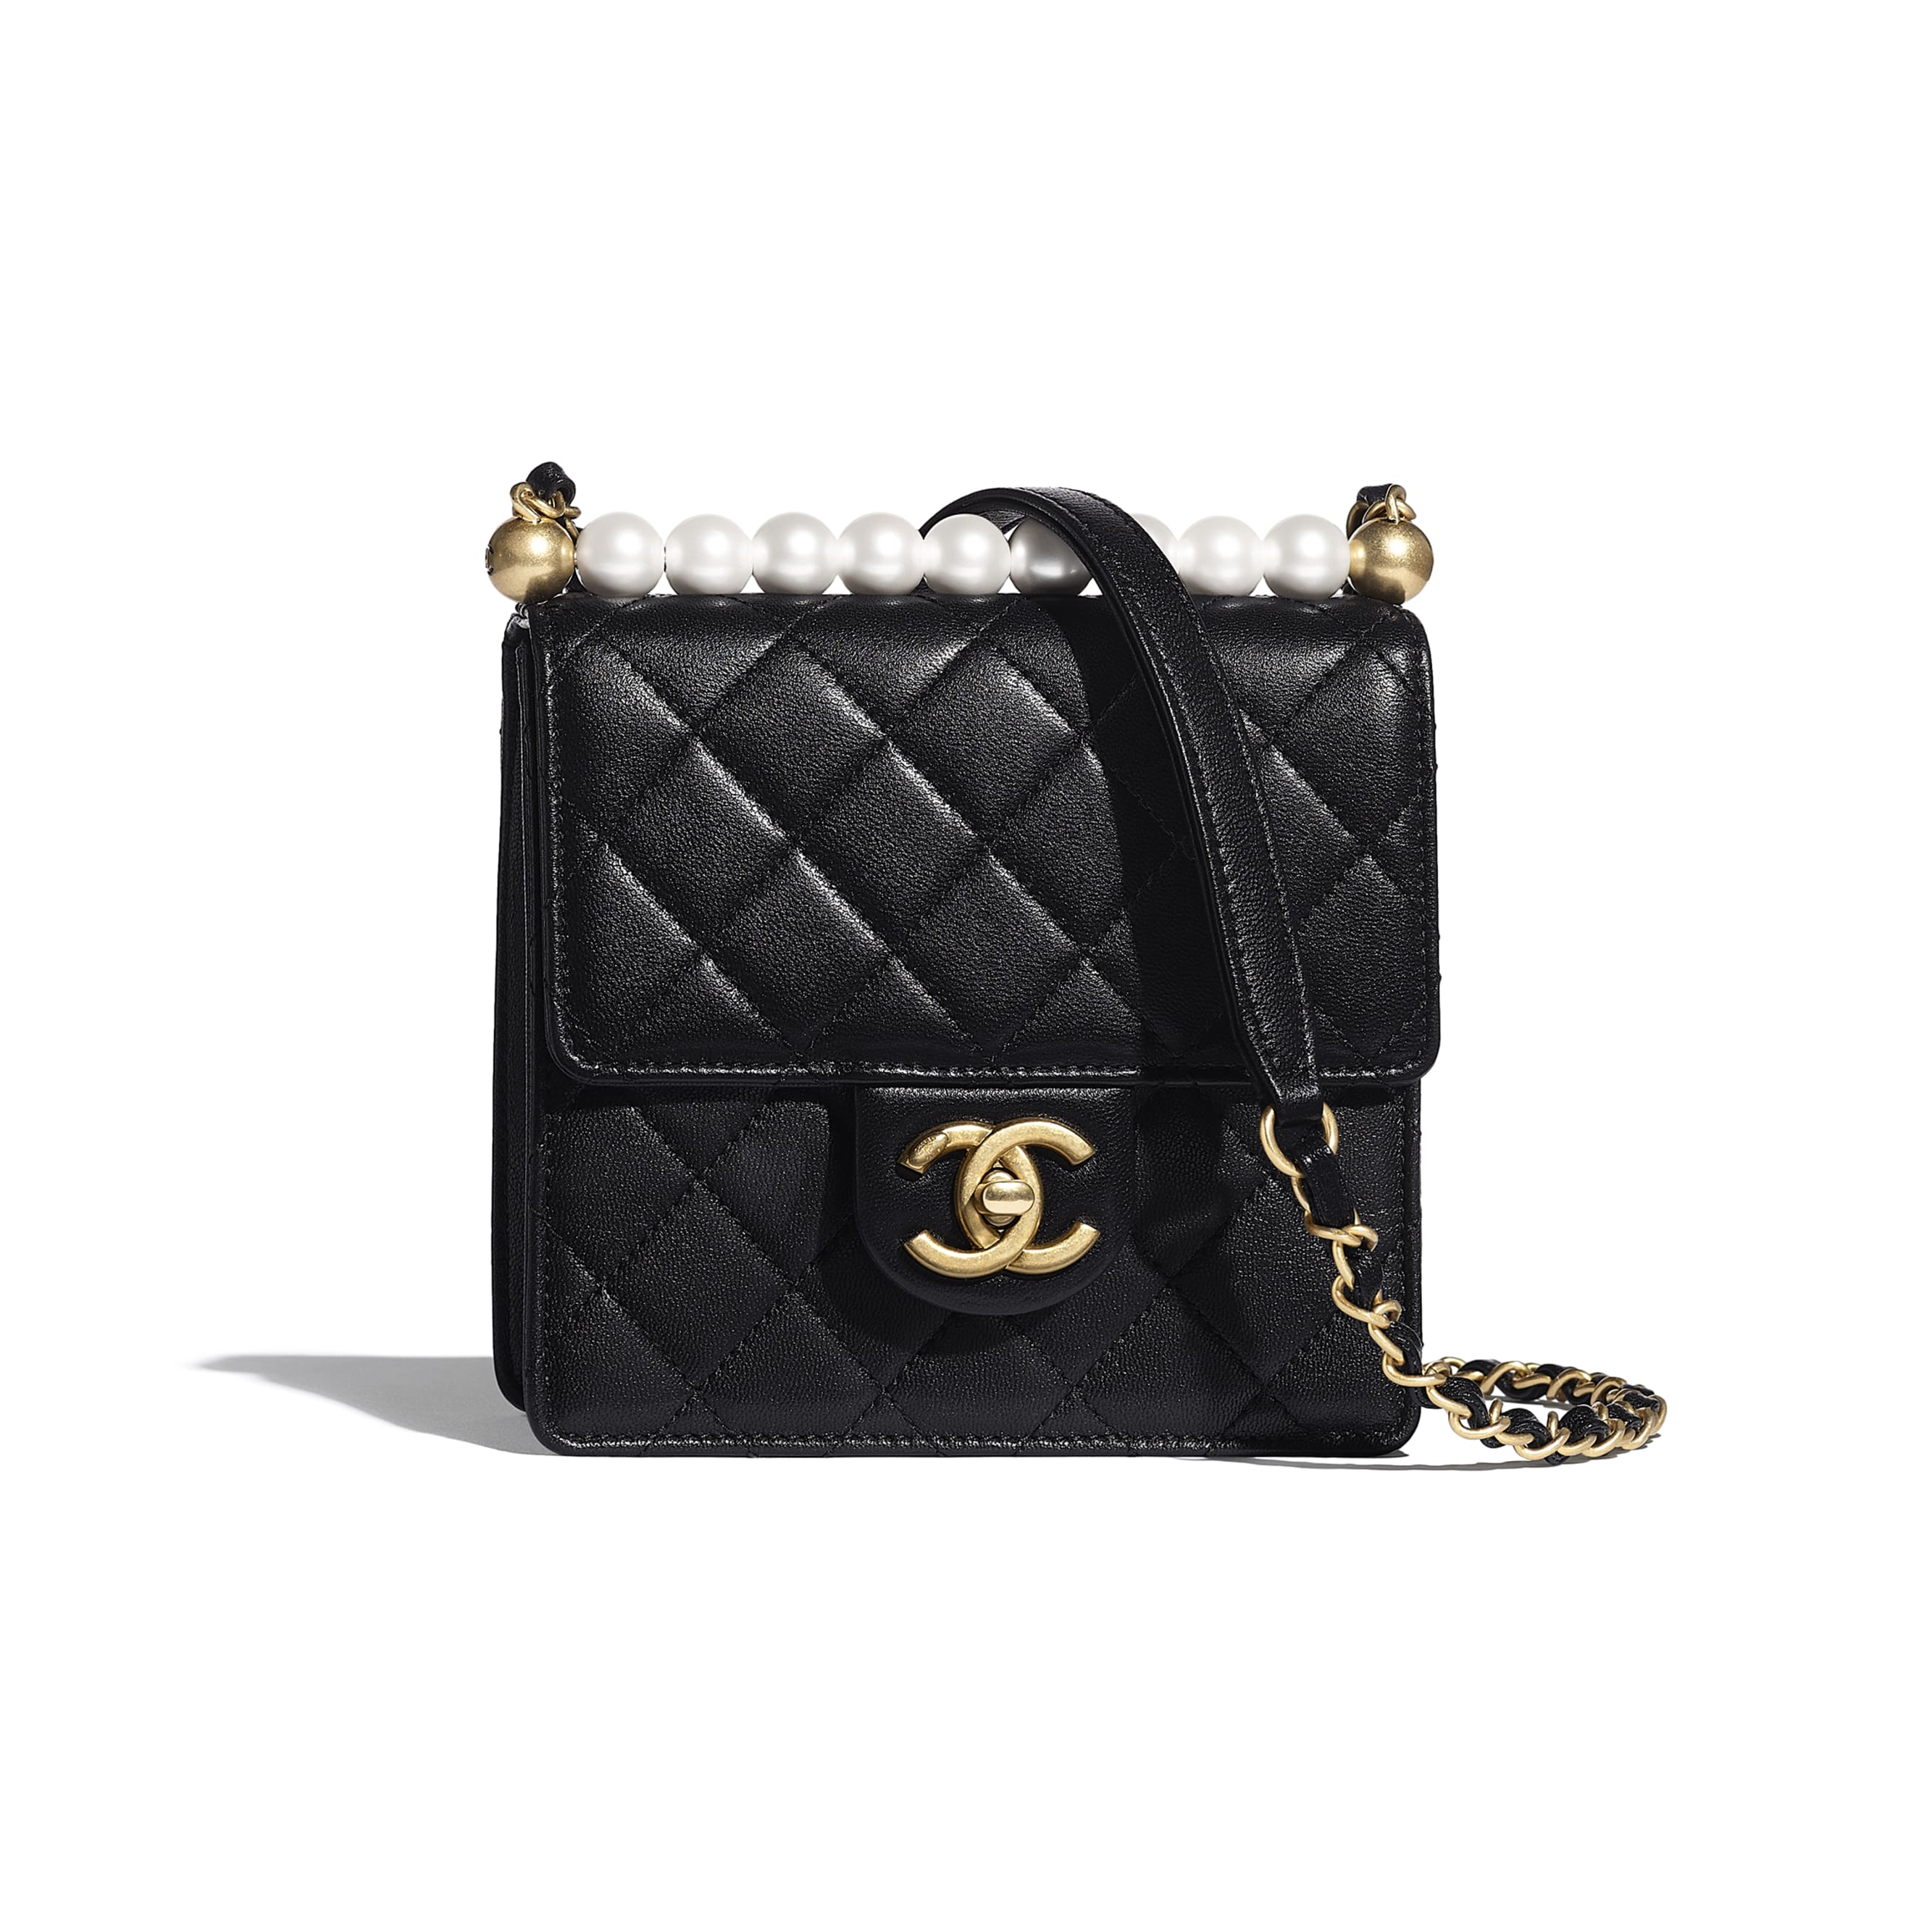 Flap Bag - Black - Goatskin, Imitation Pearls & Gold-Tone Metal - Default view - see standard sized version